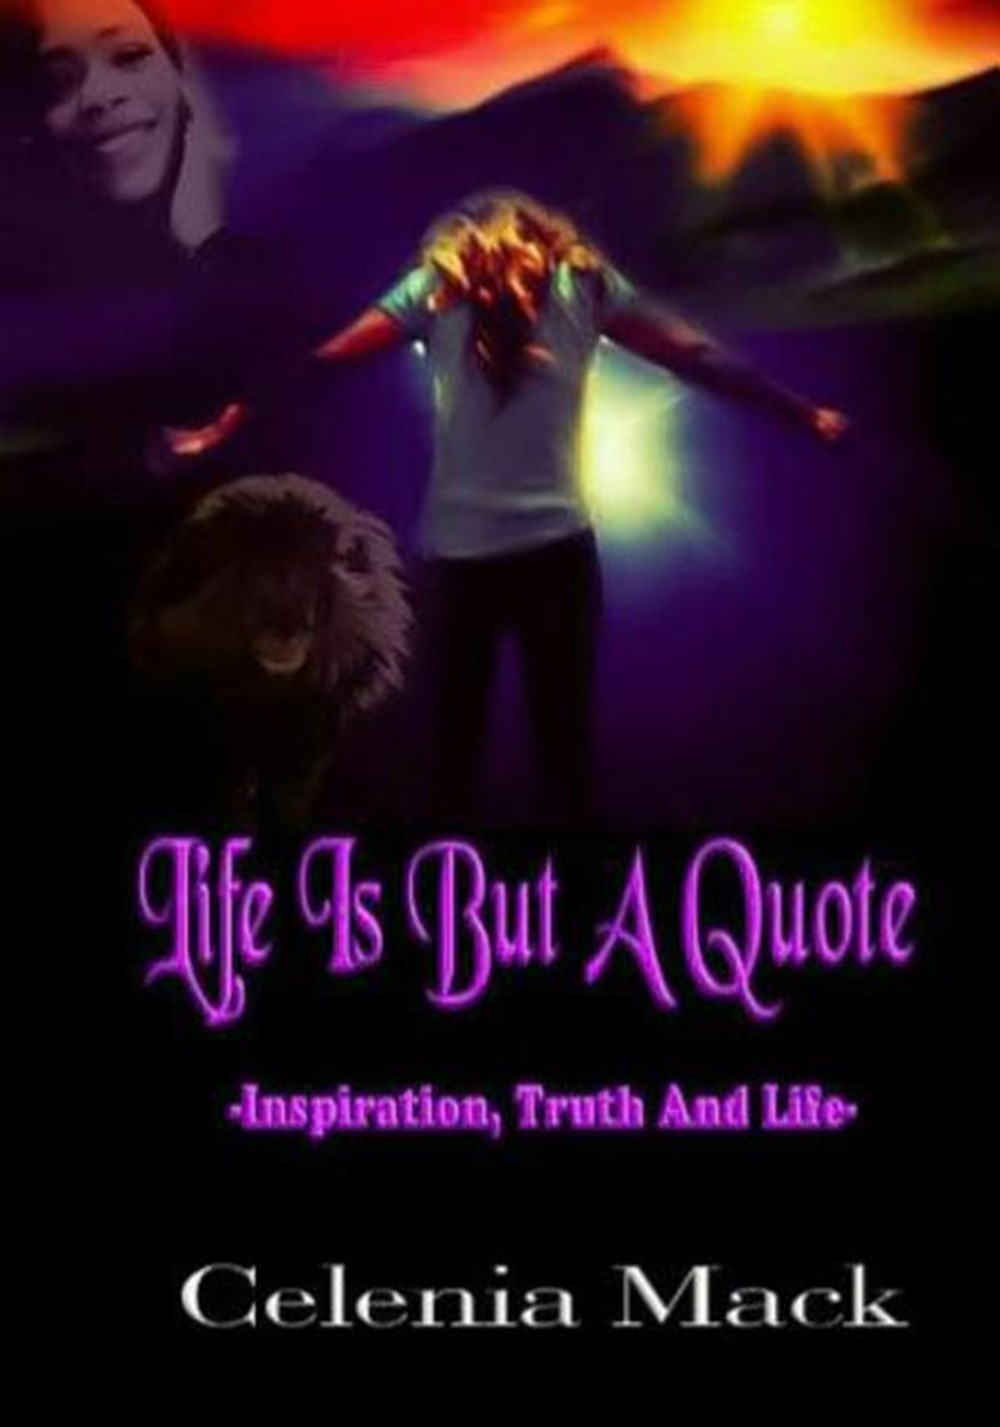 Life Is But a Quote Inspiration Truth and Life